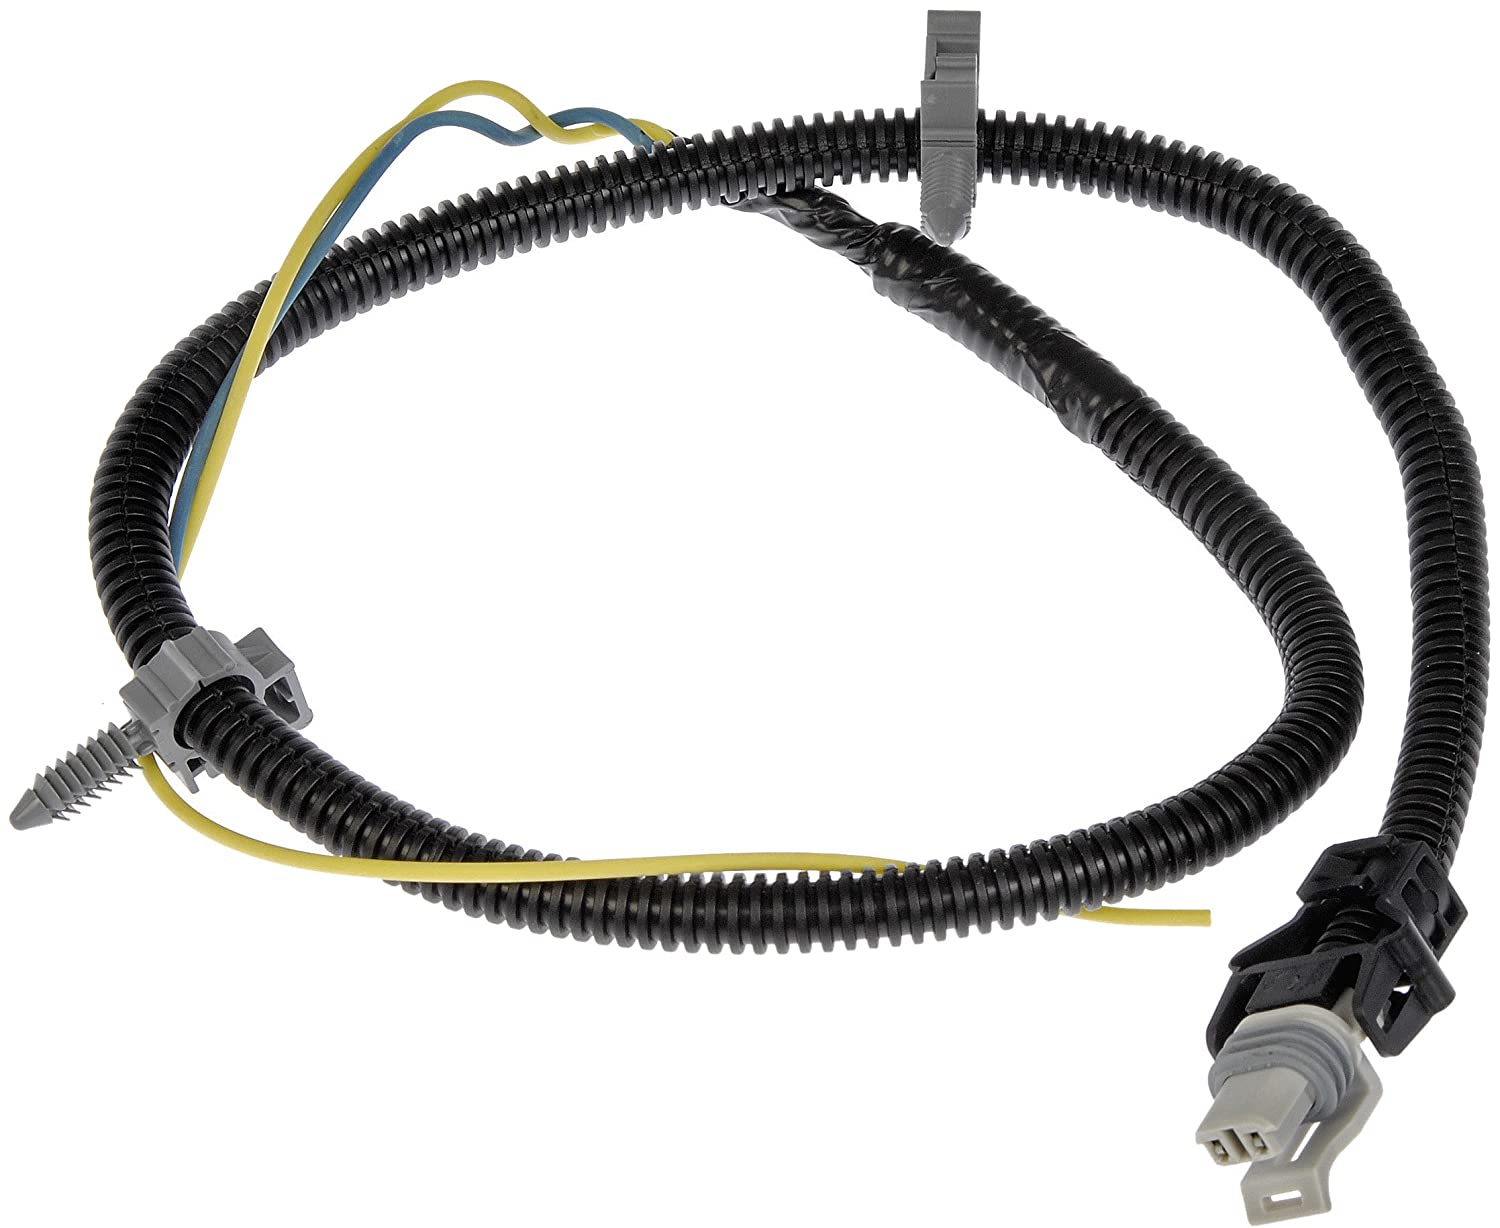 Abs Wire Harness Repair | Wiring Liry Abs Wire Harness Porsche on